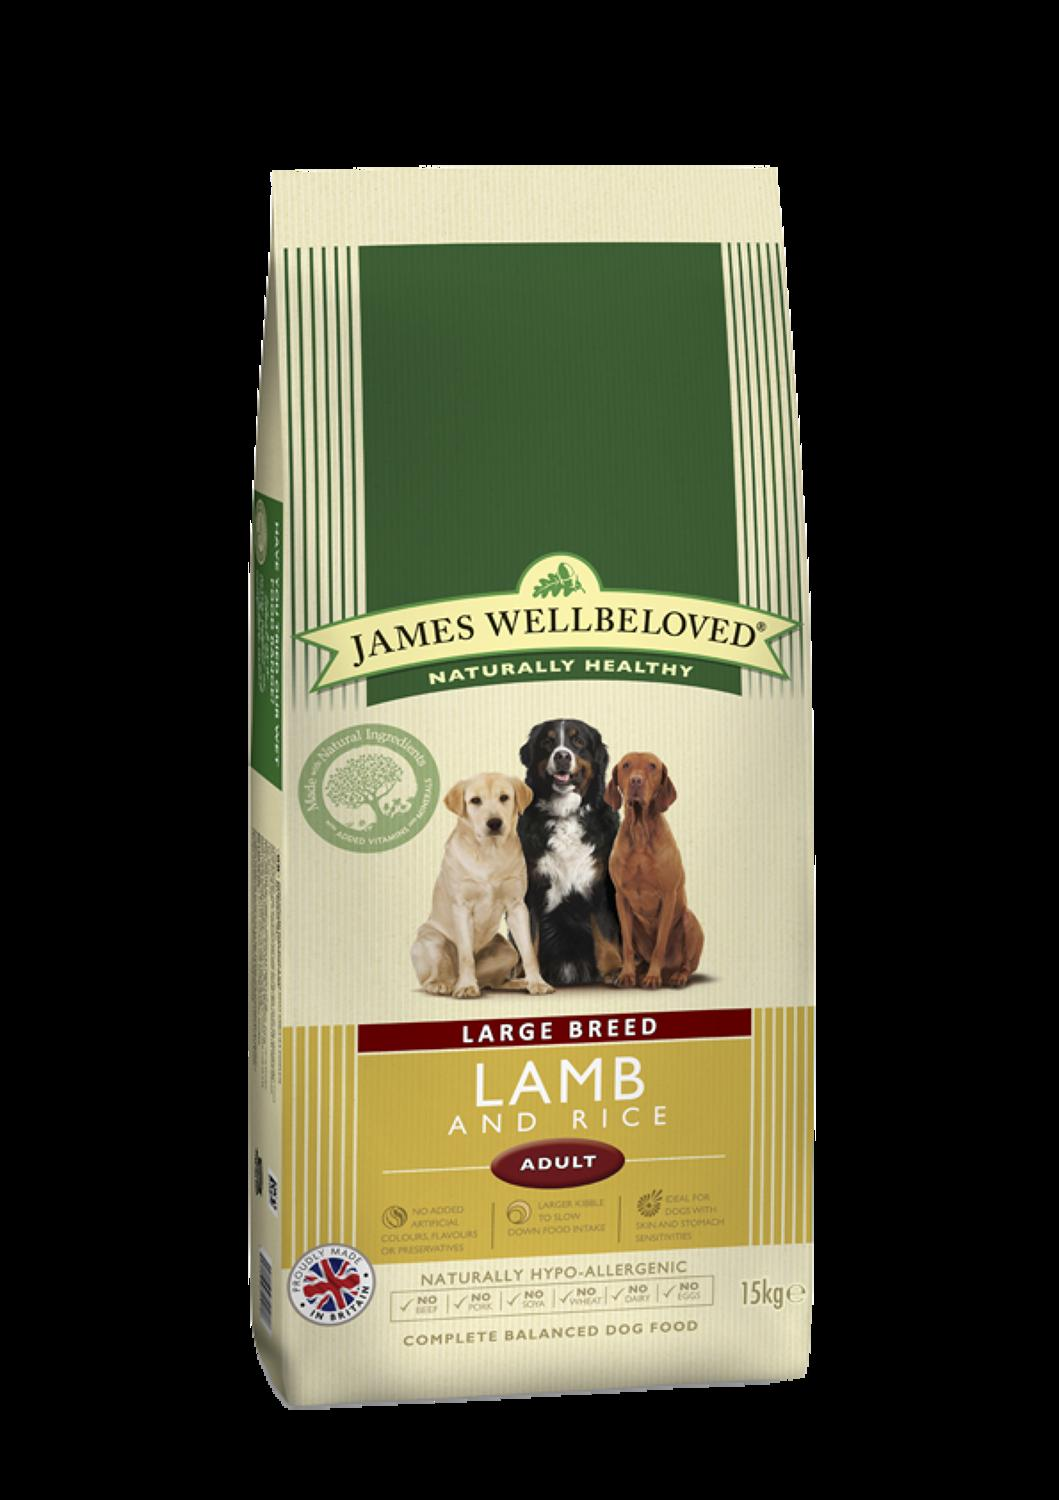 James Wellbeloved Large Breed Adult Lamb 15kg